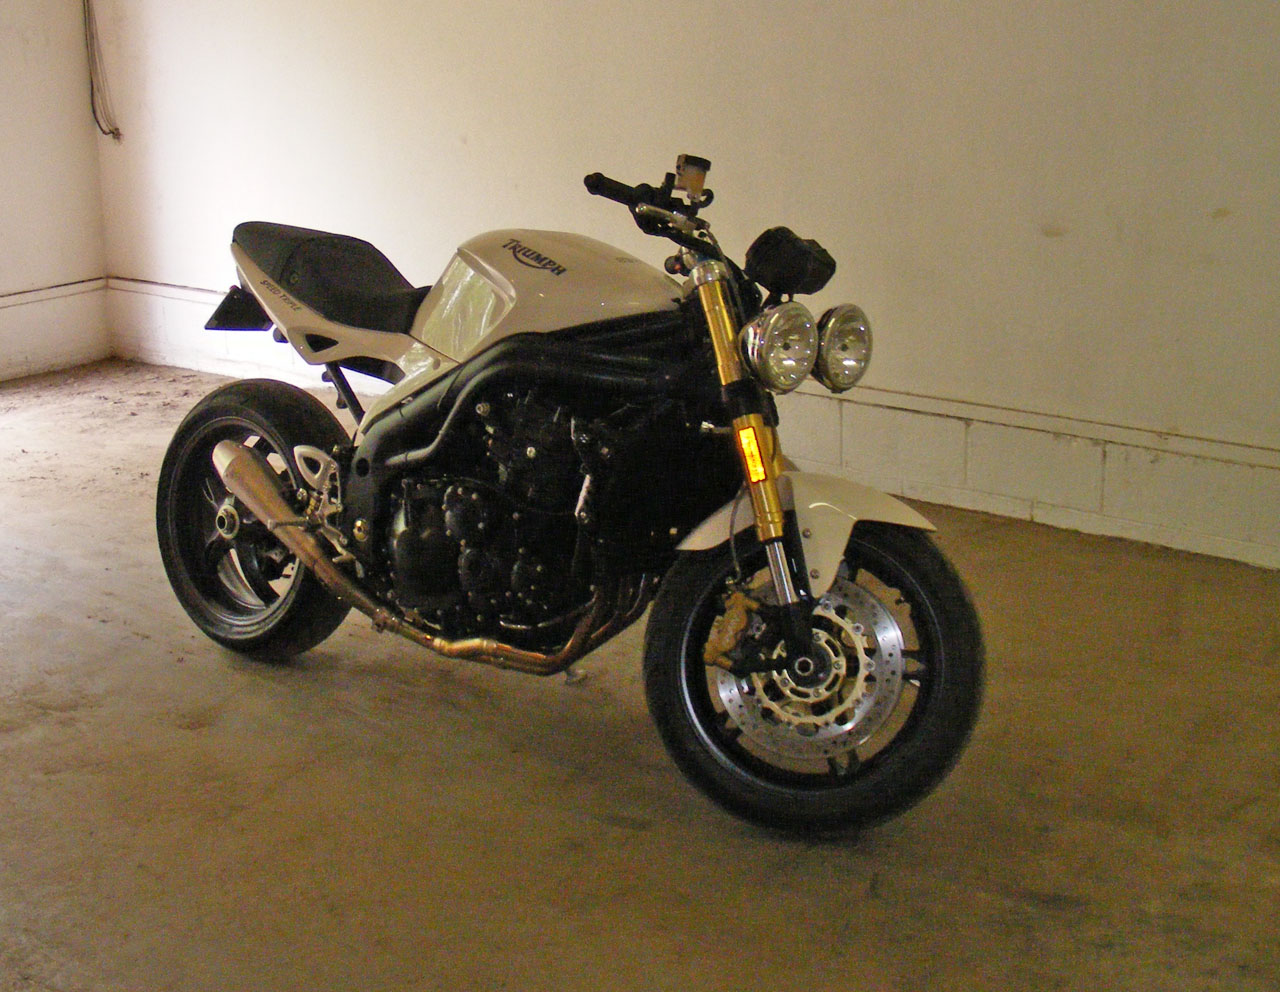 Car Extended Warranty >> 2007 Triumph Speed triple 1050 1/4 mile Drag Racing ...